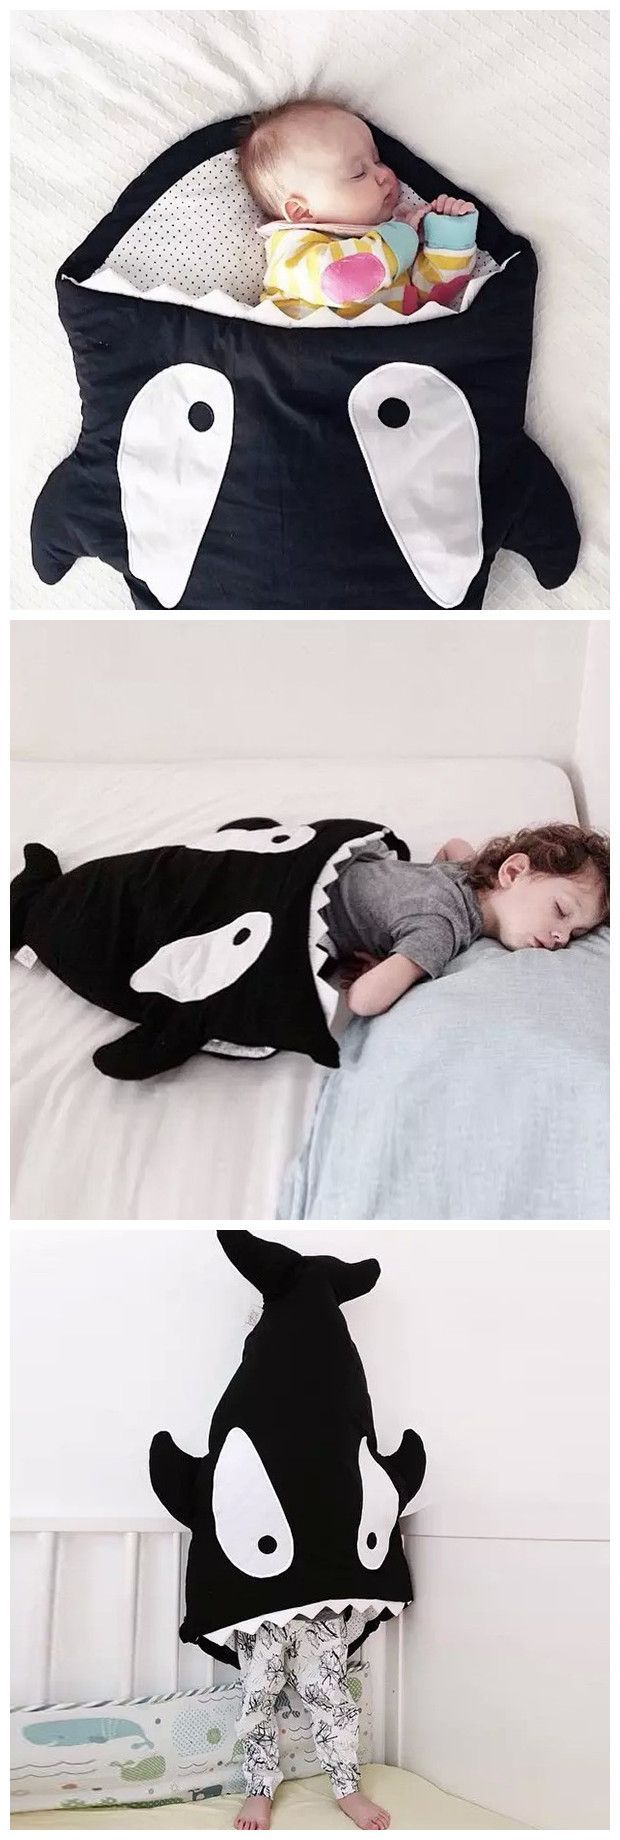 »Cute Thicken Shark Blanket by Blankie Tails For YOUR DEAR BABY« #forthekids #forthehome #gearbest www.gearbest.com